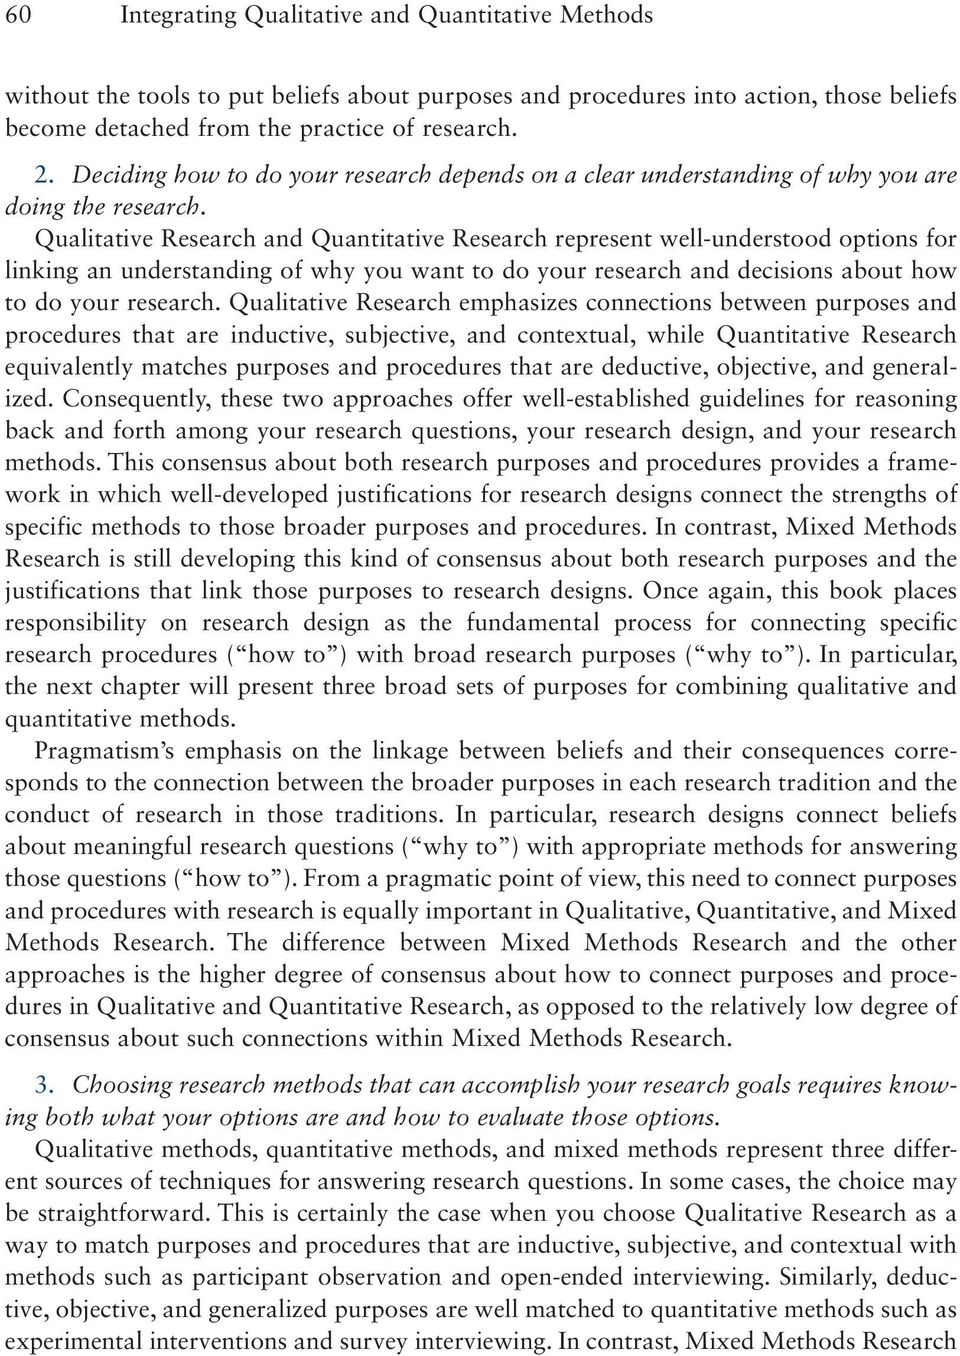 Qualitative Research and Quantitative Research represent well-understood options for linking an understanding of why you want to do your research and decisions about how to do your research.